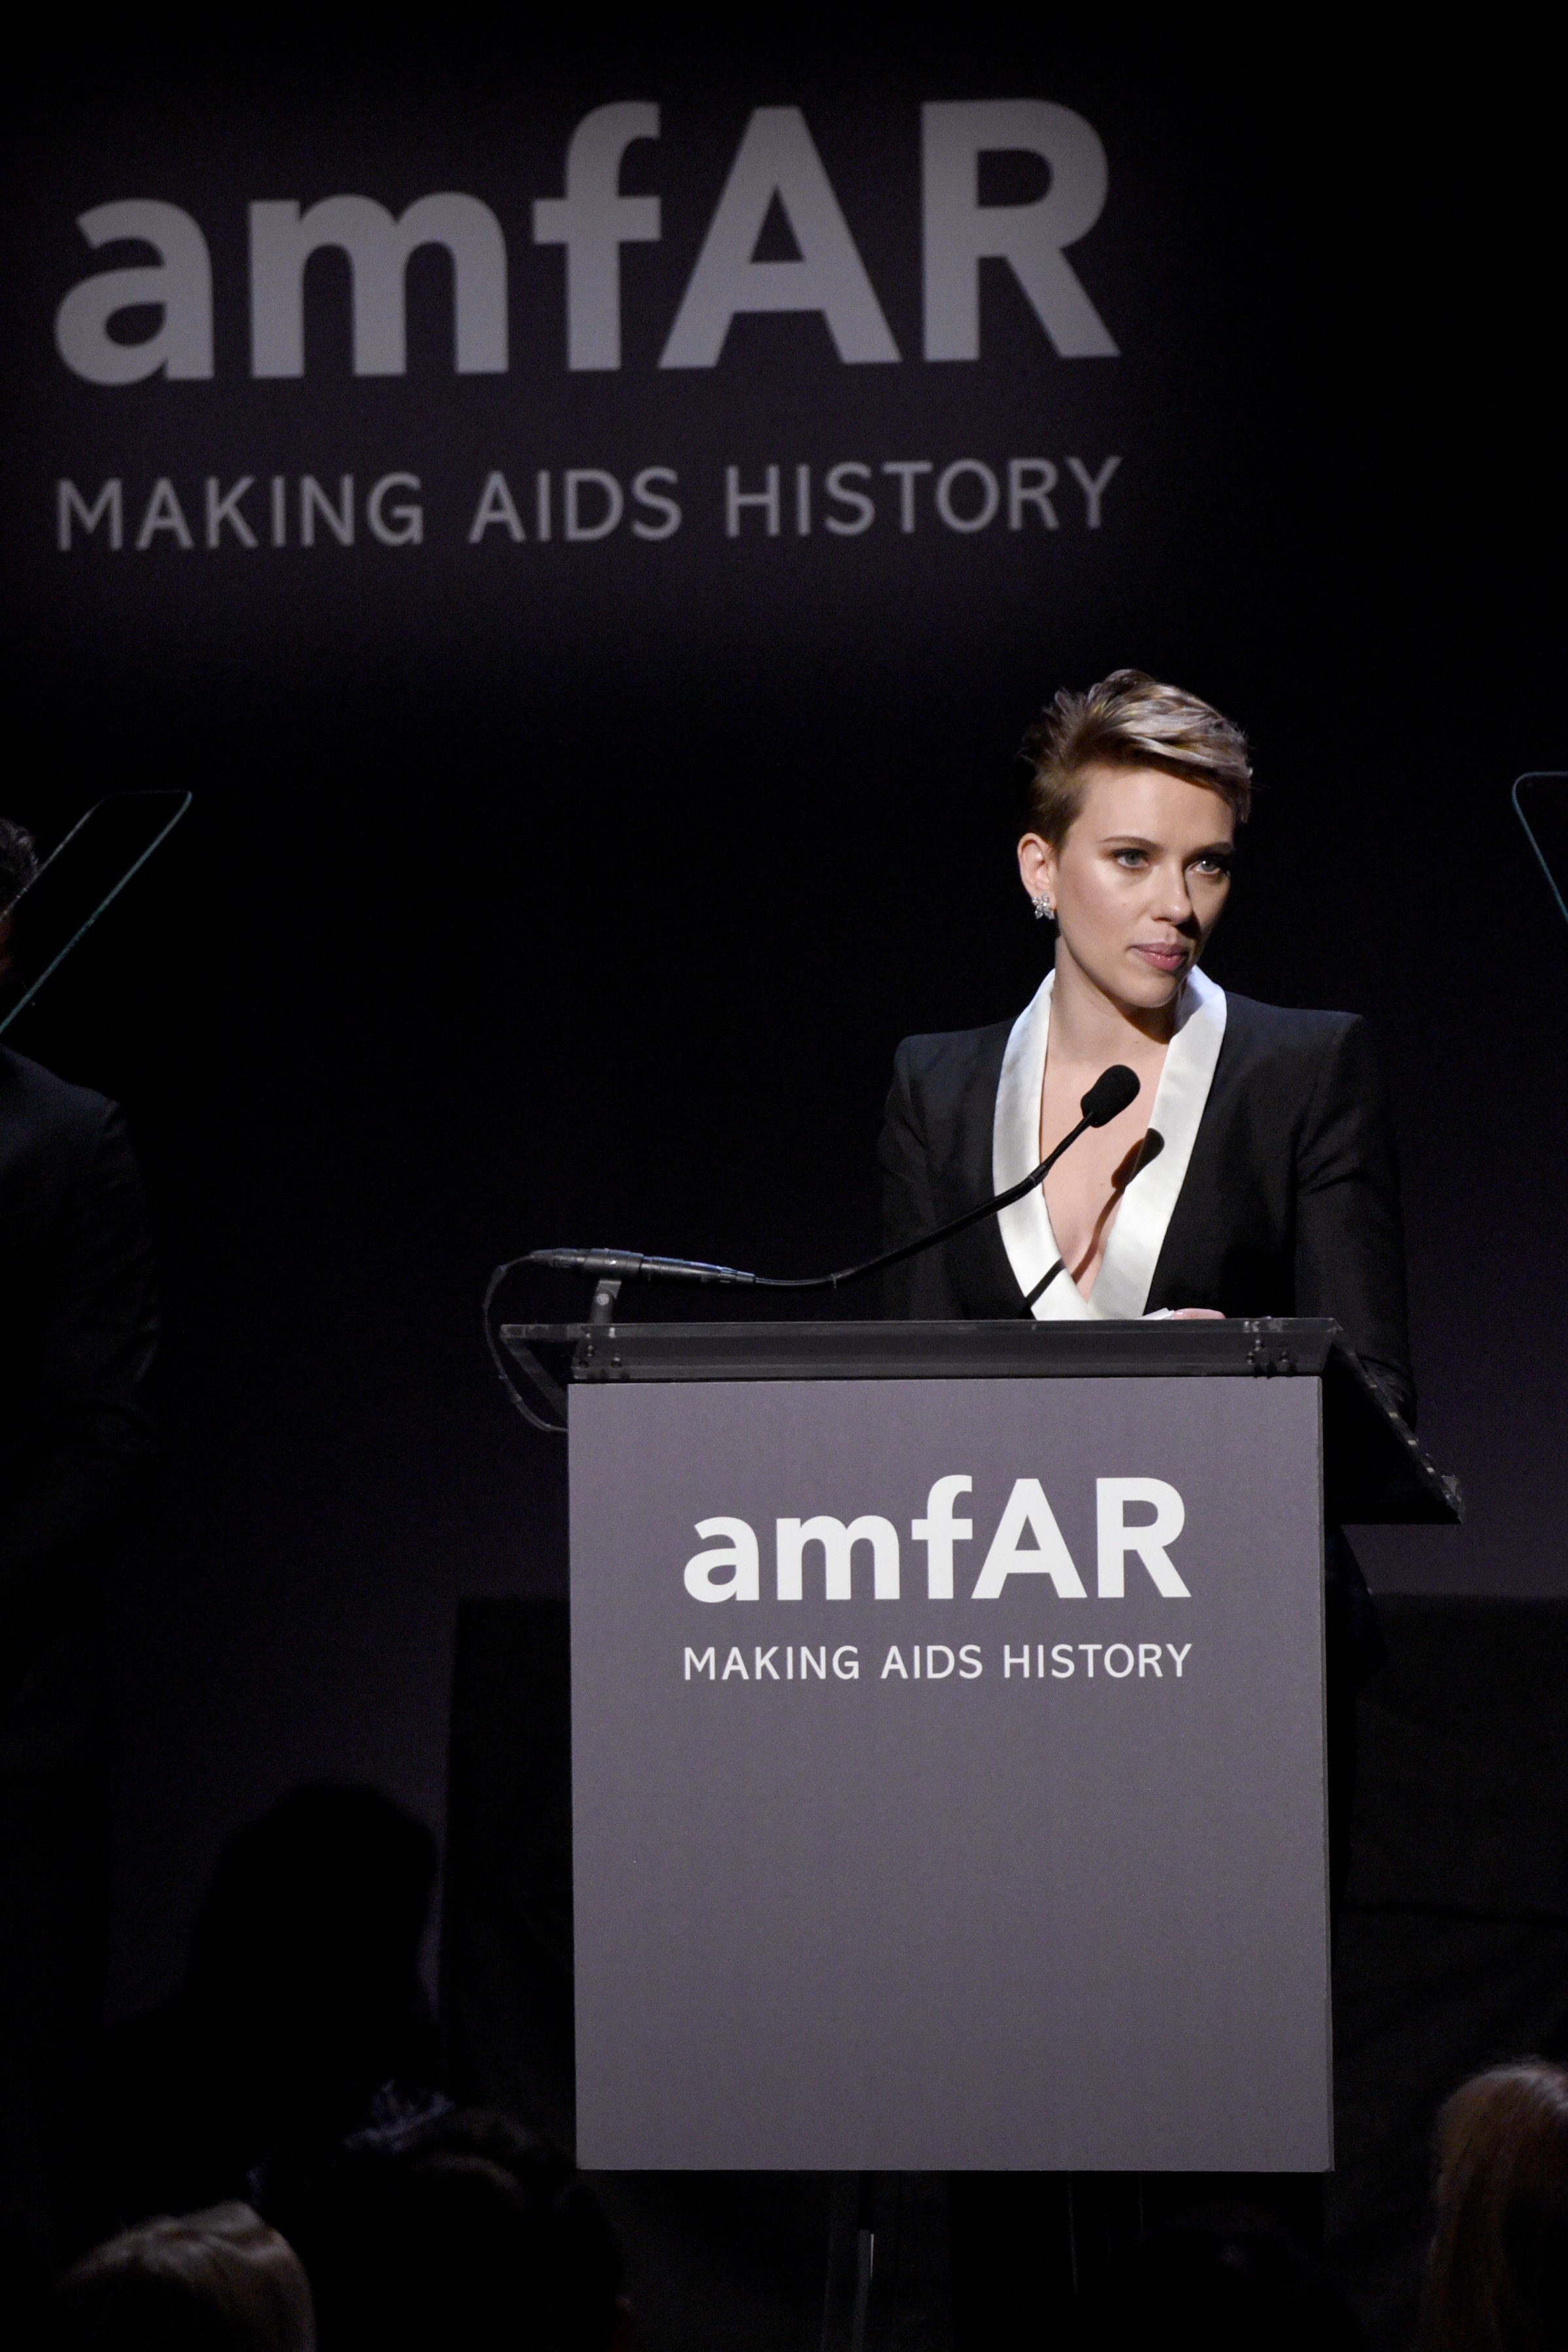 NEW YORK, NY - FEBRUARY 08:  Actress Scarlett Johansson speaks onstage as Moet & Chandon Toasts to the amfAR New York Gala At Cipriani Wall Street at Cipriani Wall Street on February 8, 2017 in New York City.  (Photo by Bryan Bedder/Getty Images for Moet & Chandon)